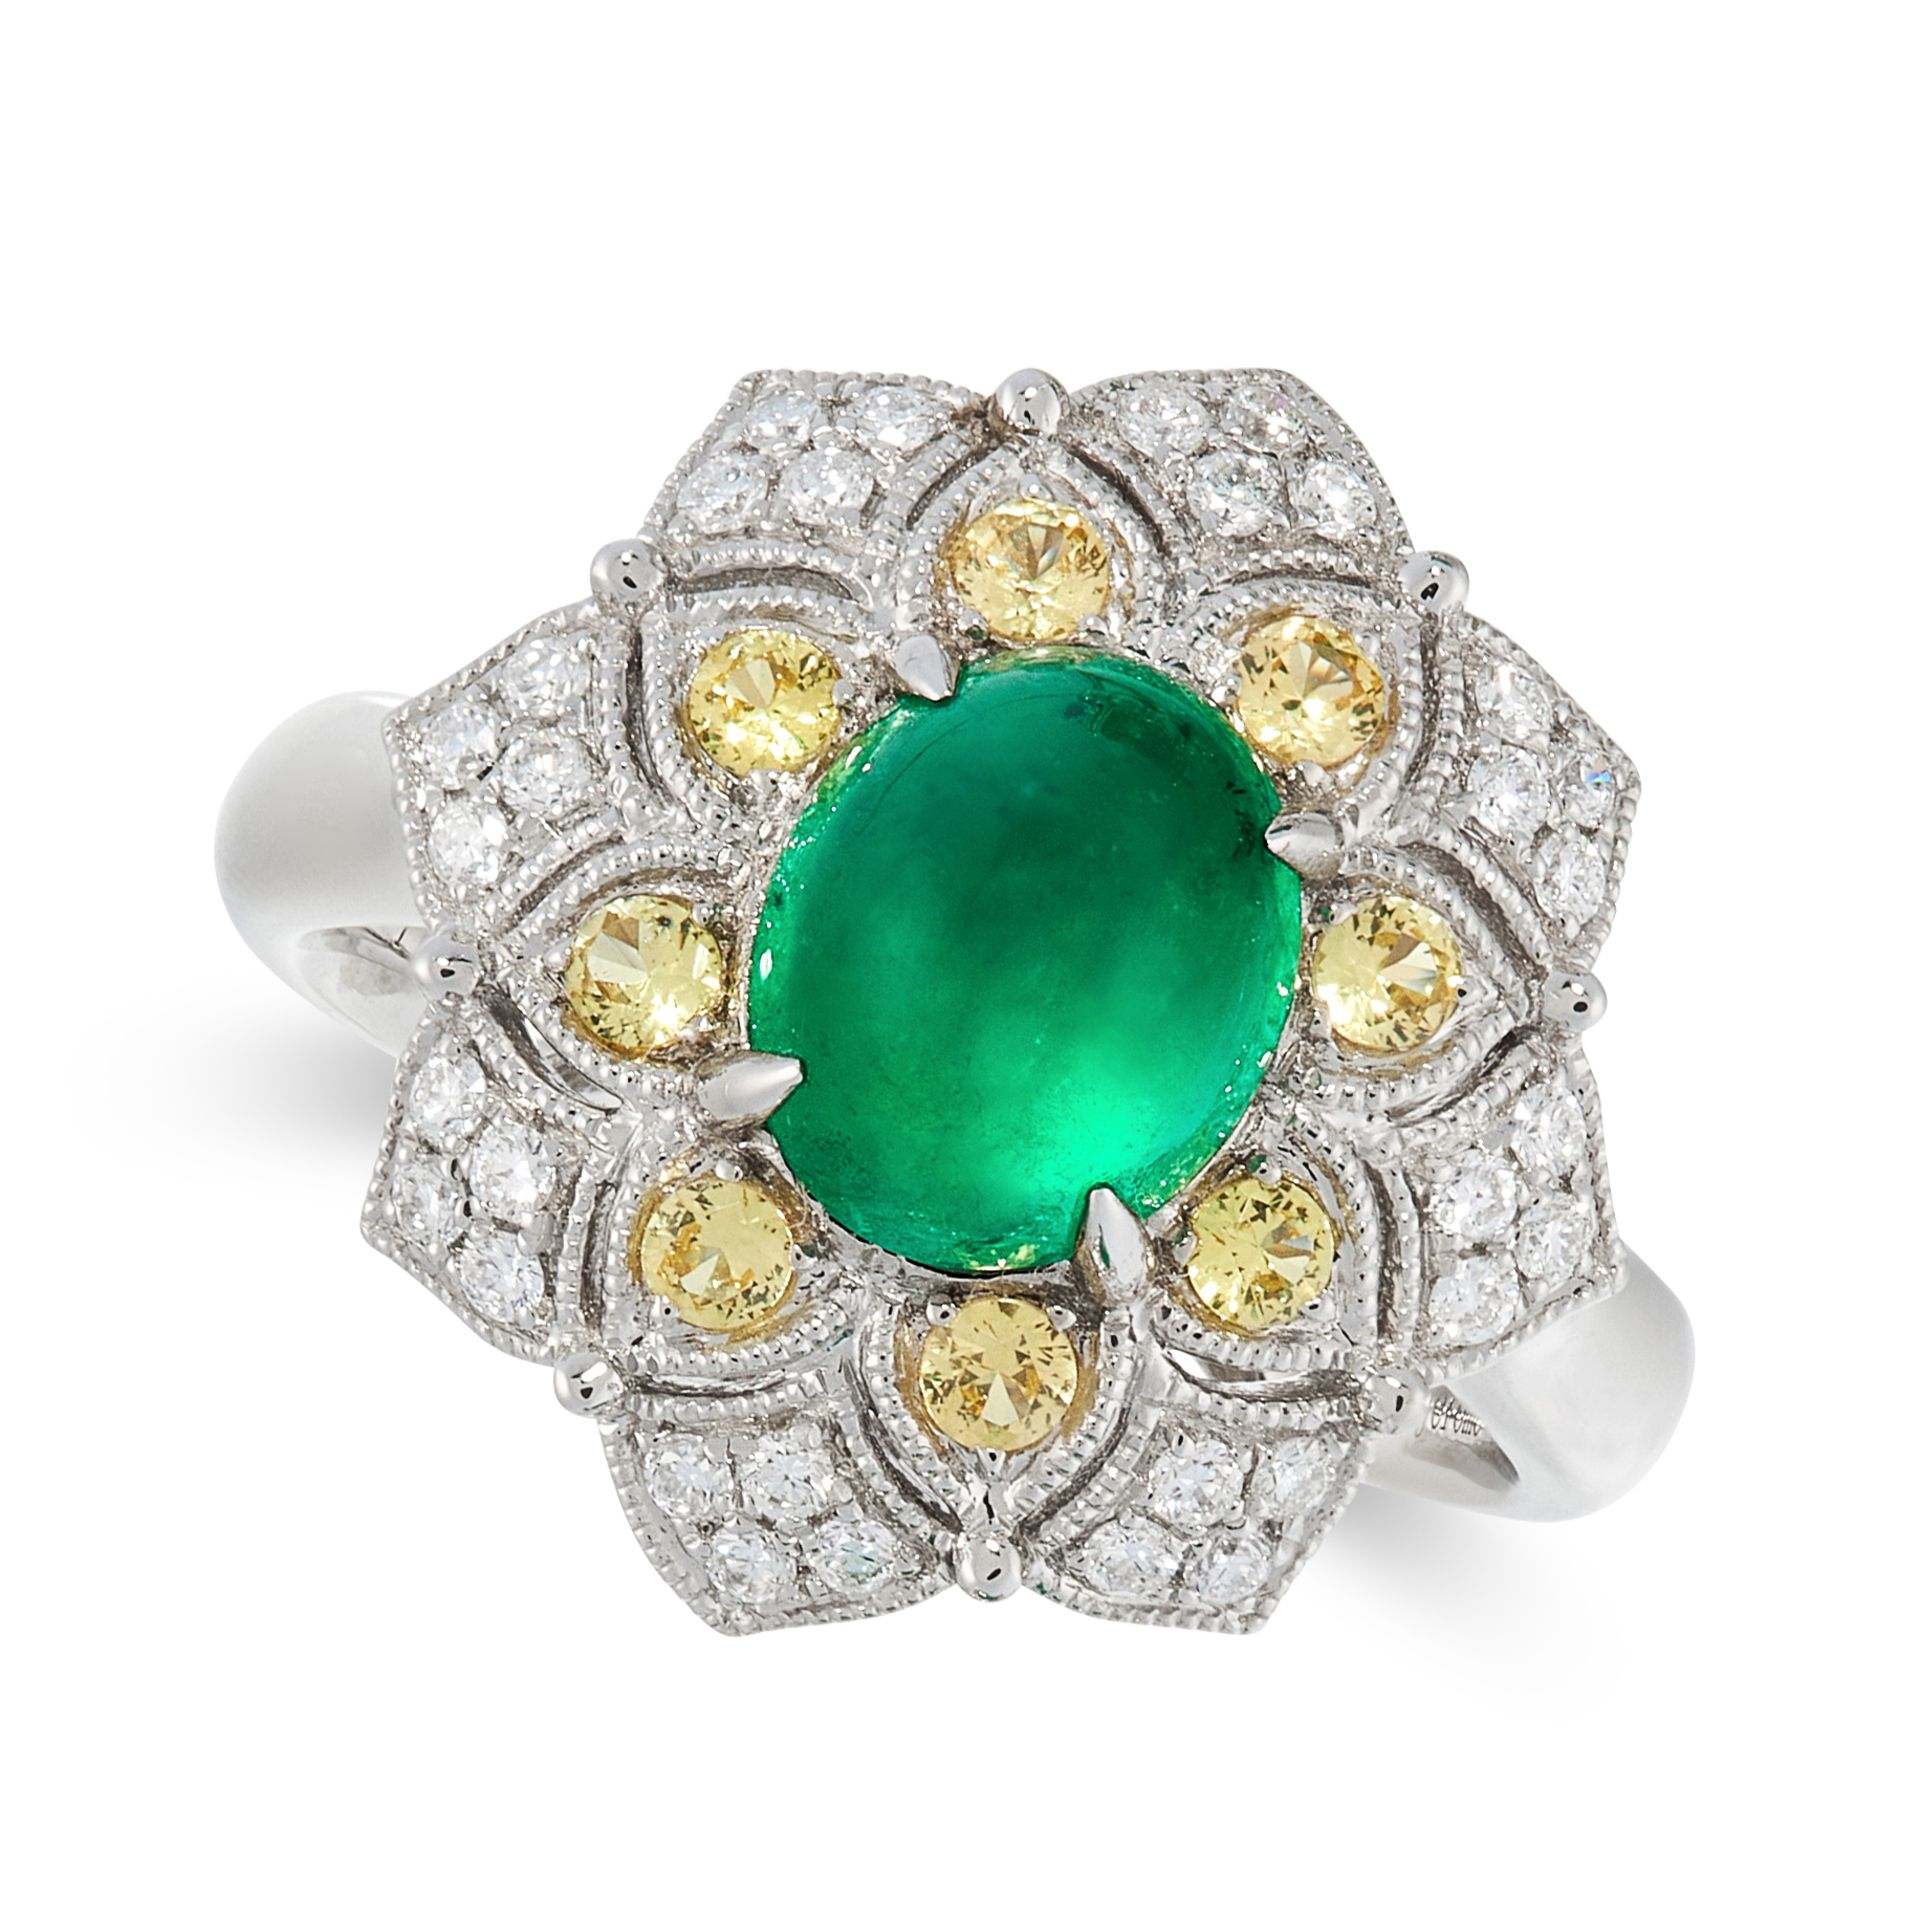 AN UNTREATED COLOMBIAN EMERALD, YELLOW SAPPHIRE AND DIAMOND DRESS RING in platinum, set with a